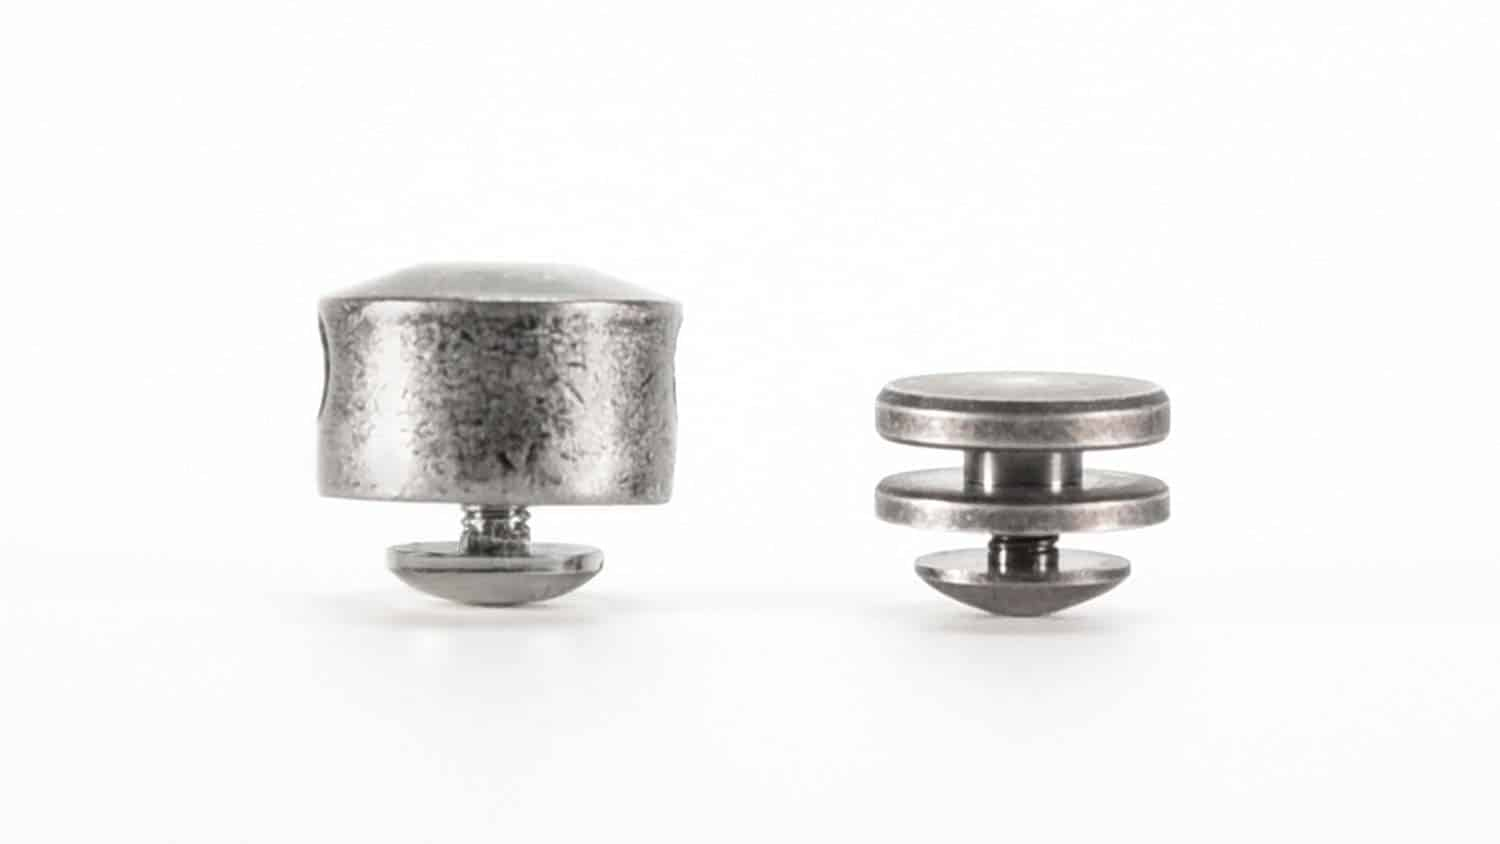 replacement sizing studs